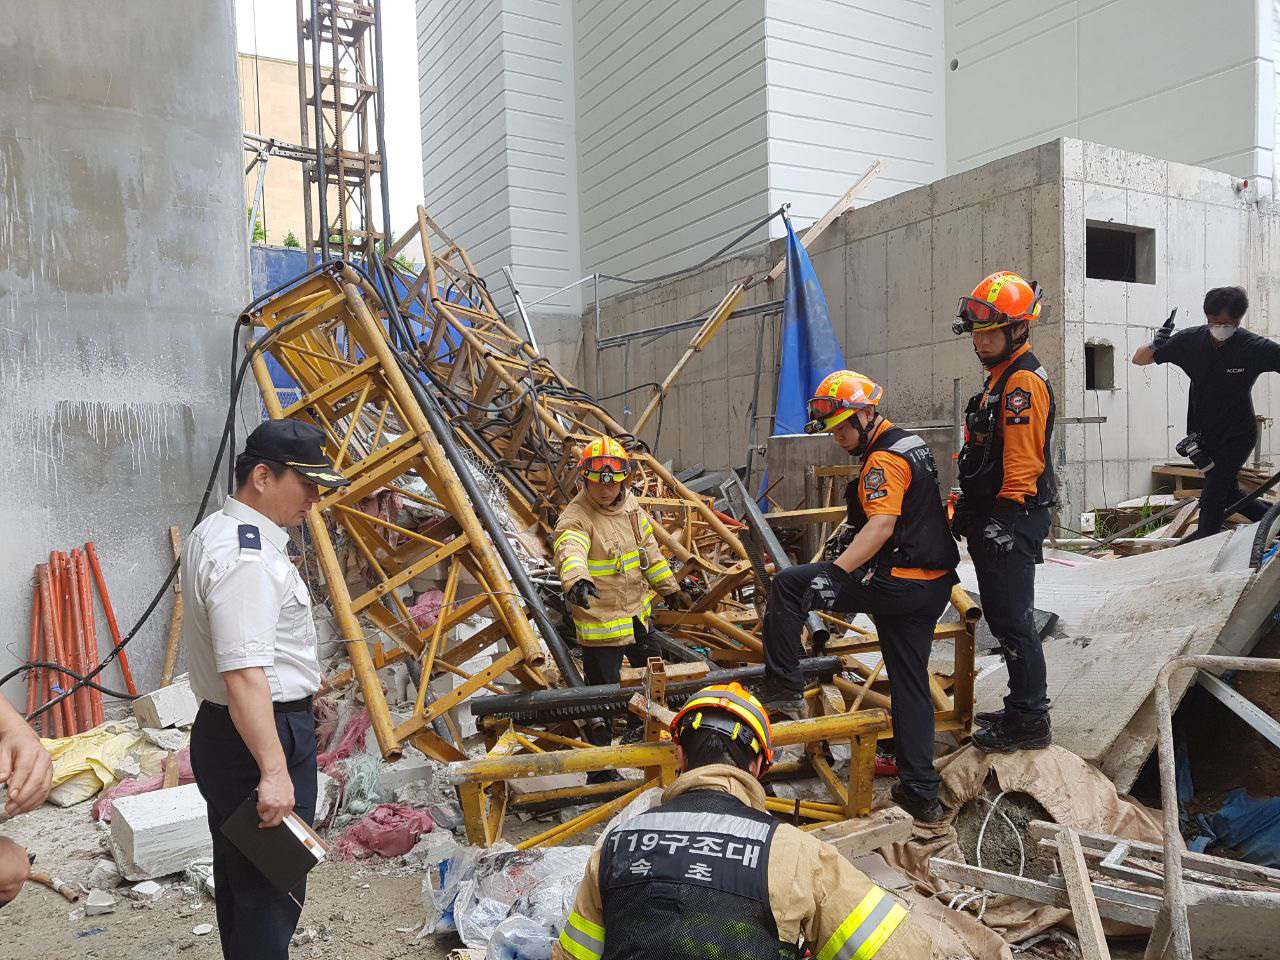 Workers conduct rescue efforts at the construction site in Sokcho of Gangwon Province where three workers died and three injured in an elevator crash on Wednesday morning. (Yonhap)